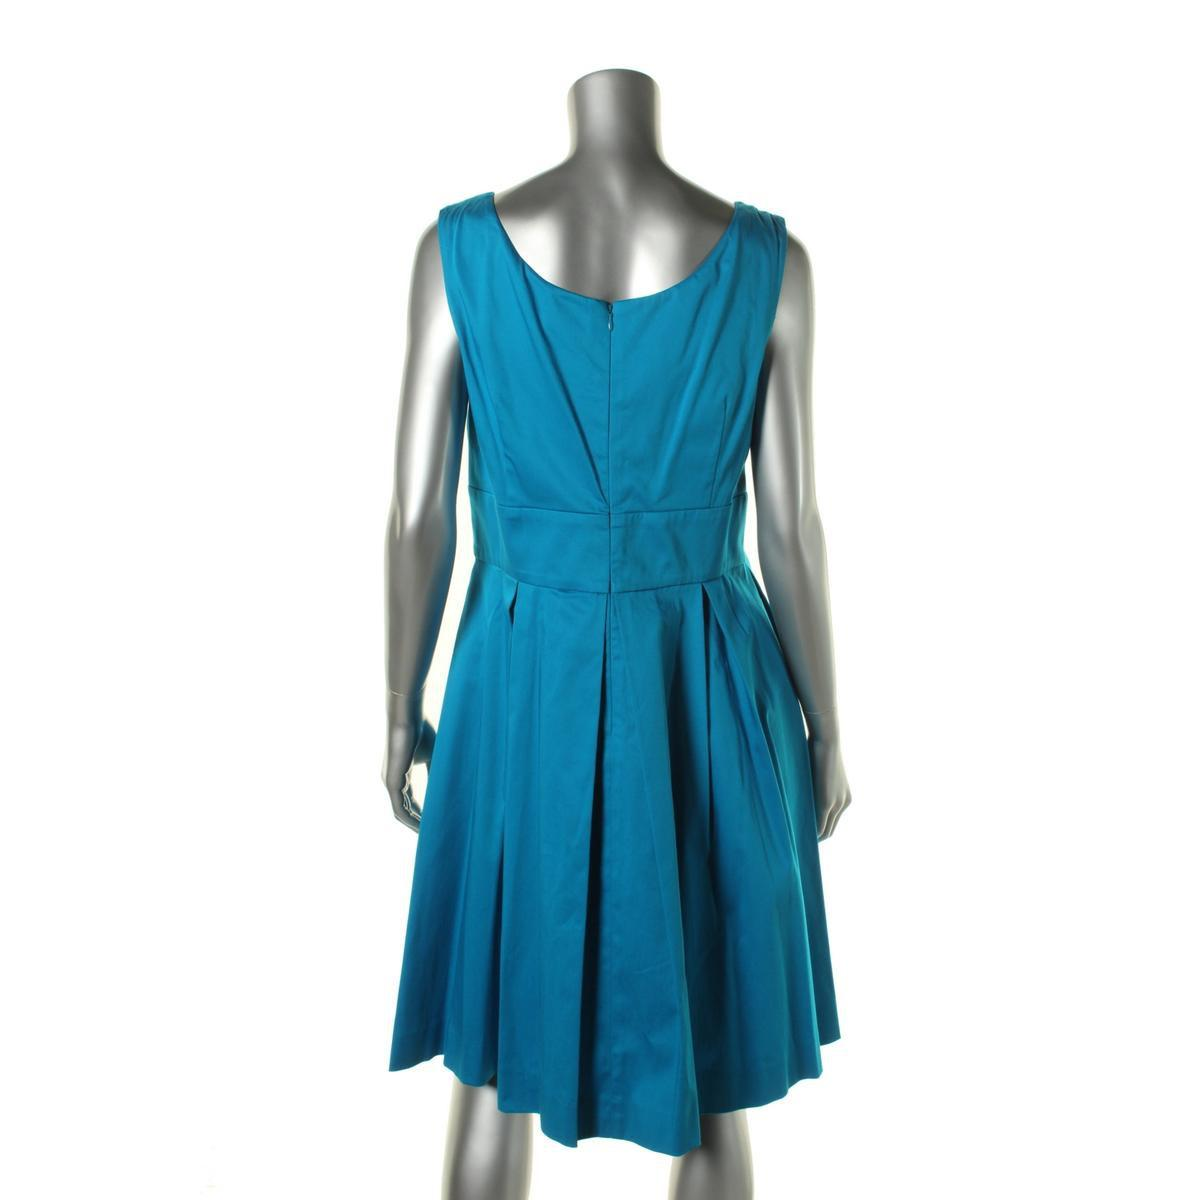 8bc7942c42dbb2 Lyst - Calvin Klein Scoop Neck A-line Sundress in Blue